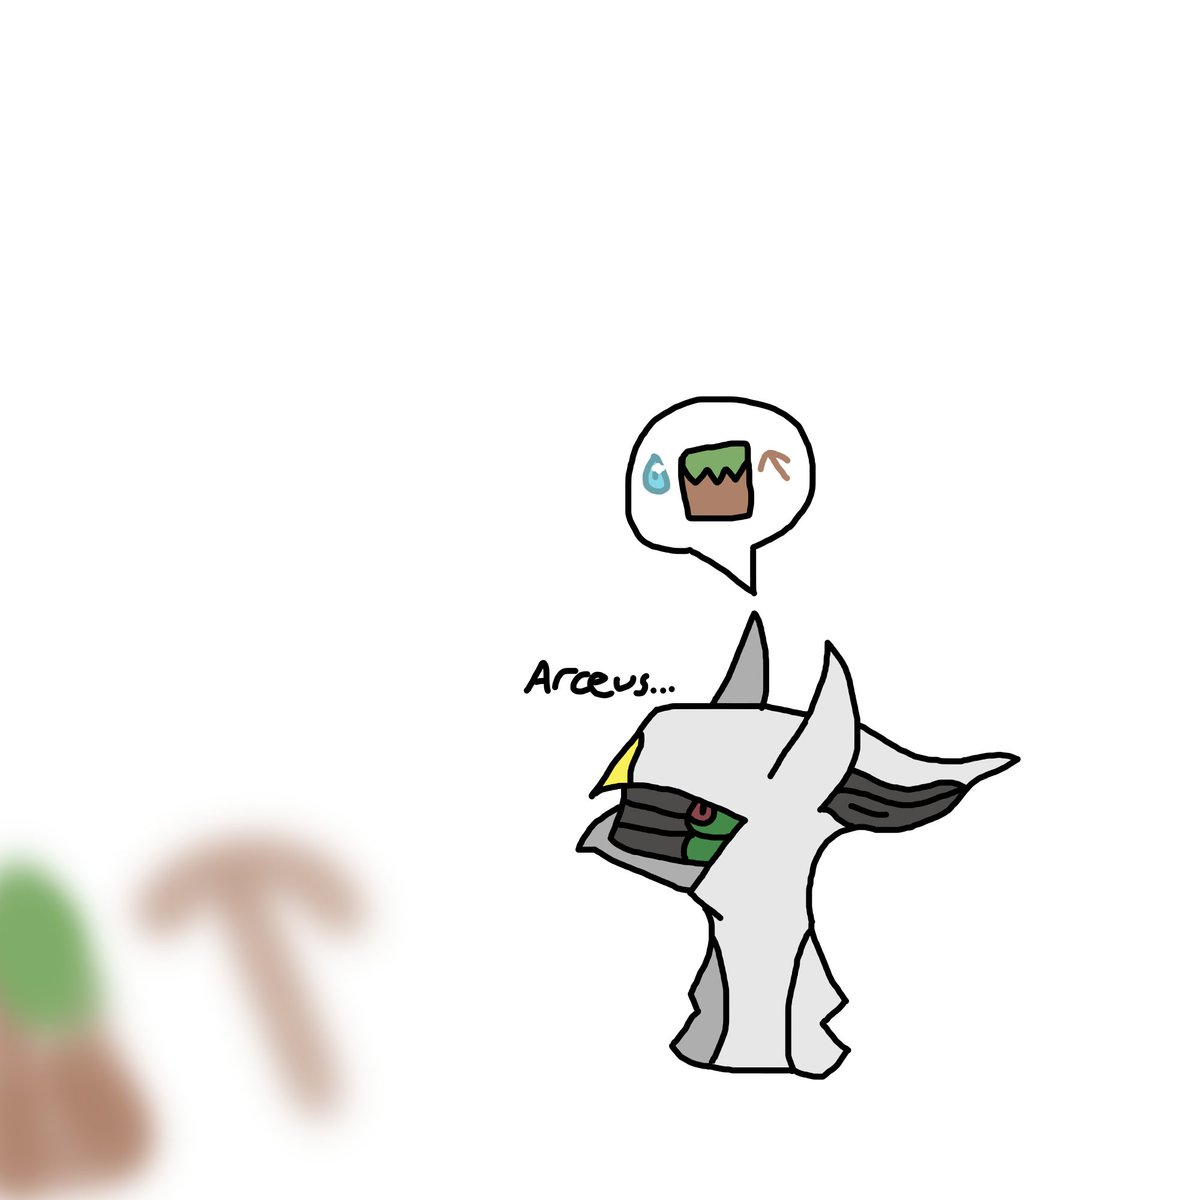 Got into an Arceus mood, actually did Arceus quite well, with the Japanese source #Minecraft #Arceus #Pokemon #Art